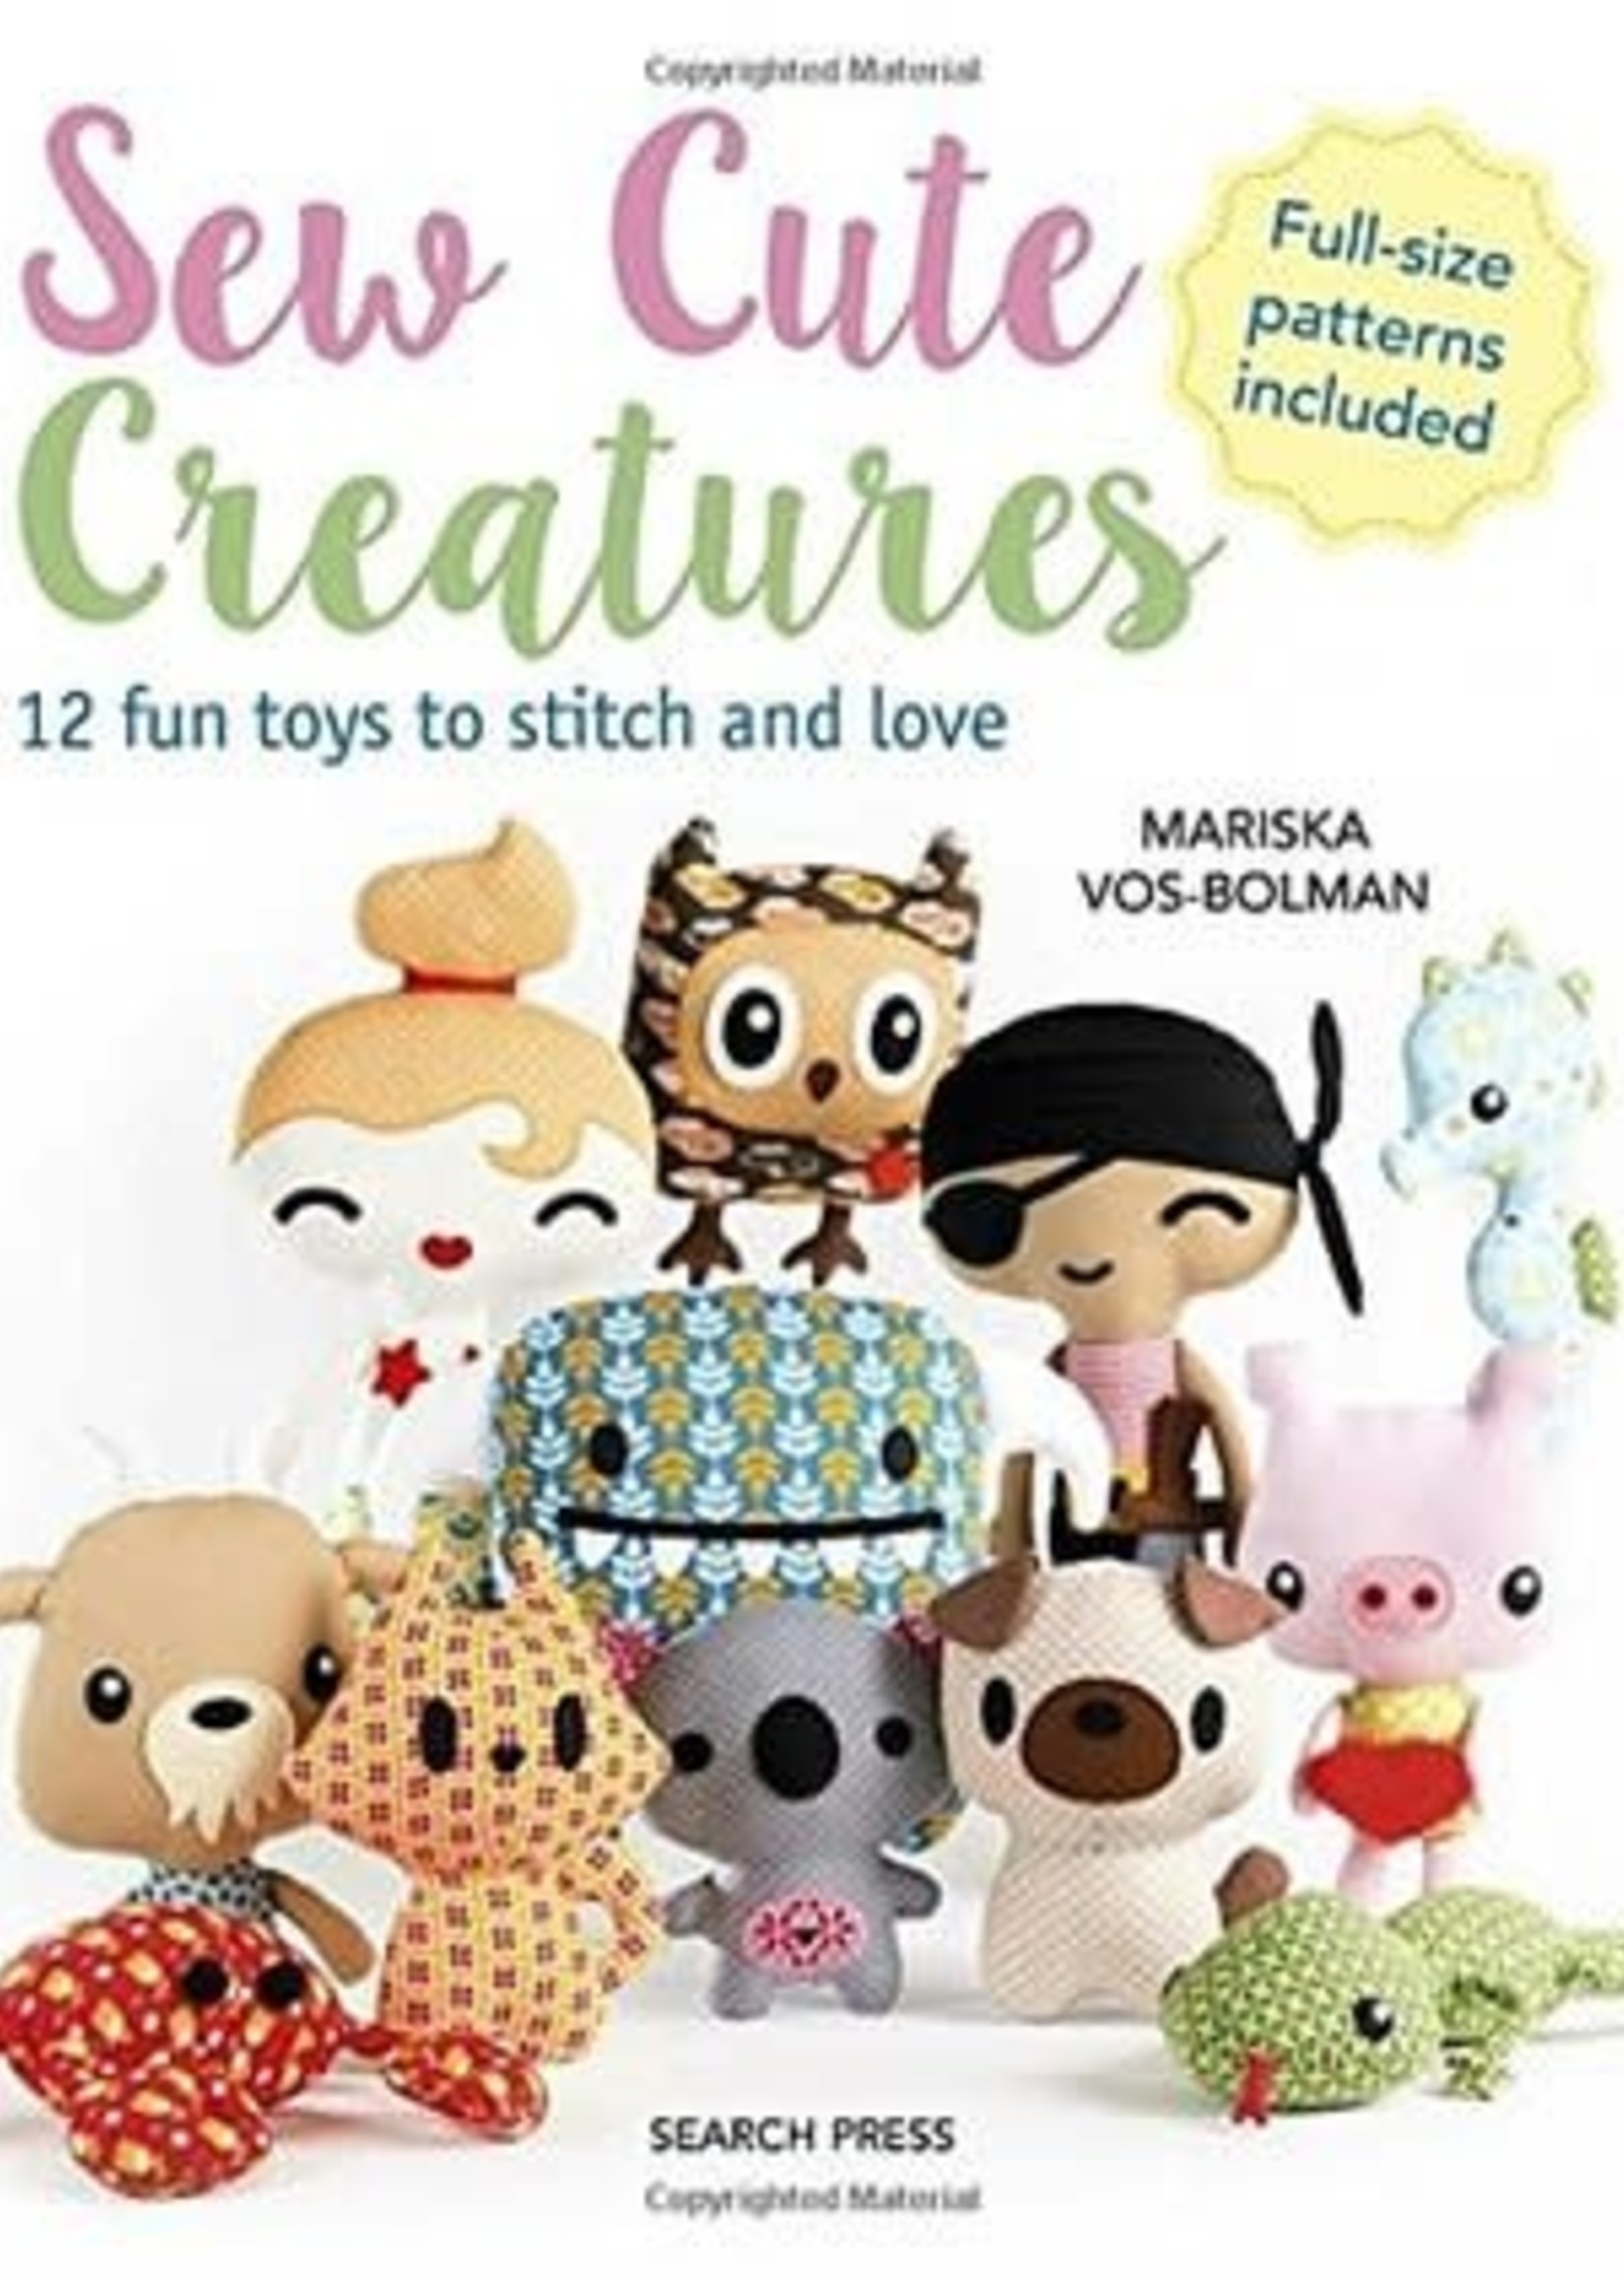 Sew Cute Creatures: 12 Fun Toys to Stitch and Love by Mariska Vos-Bolman